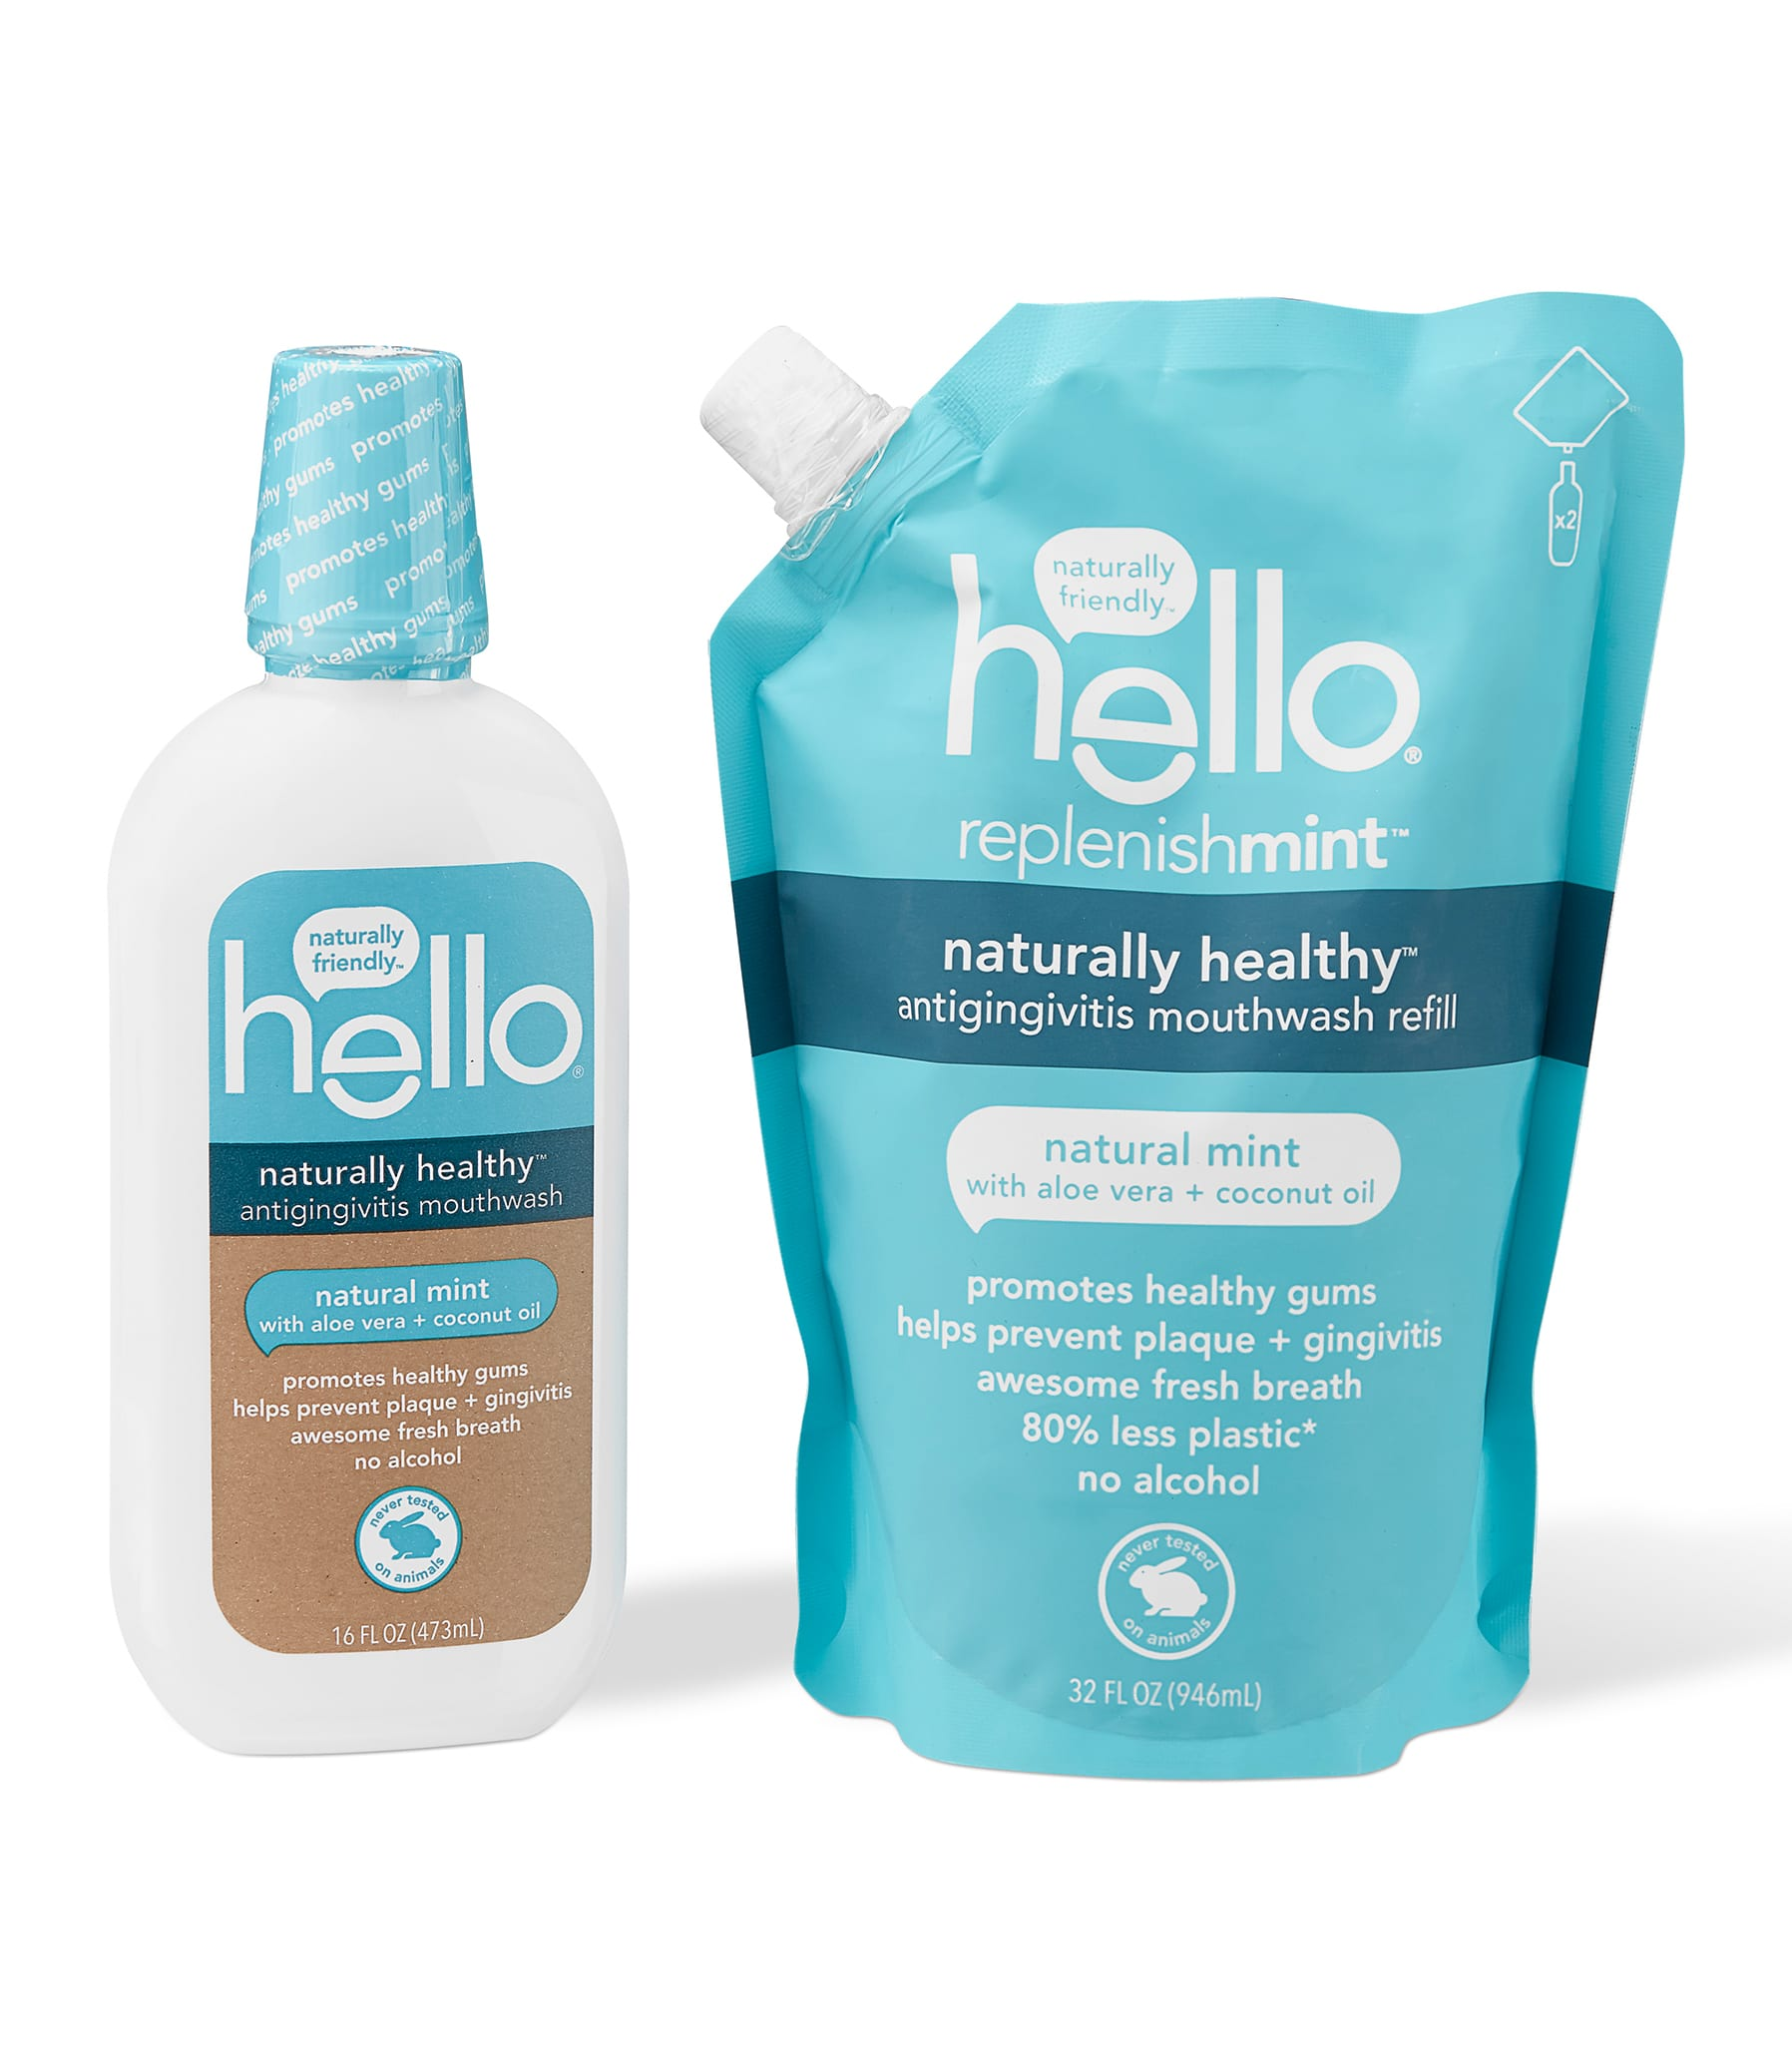 naturally healthy mouthwash kit + refill